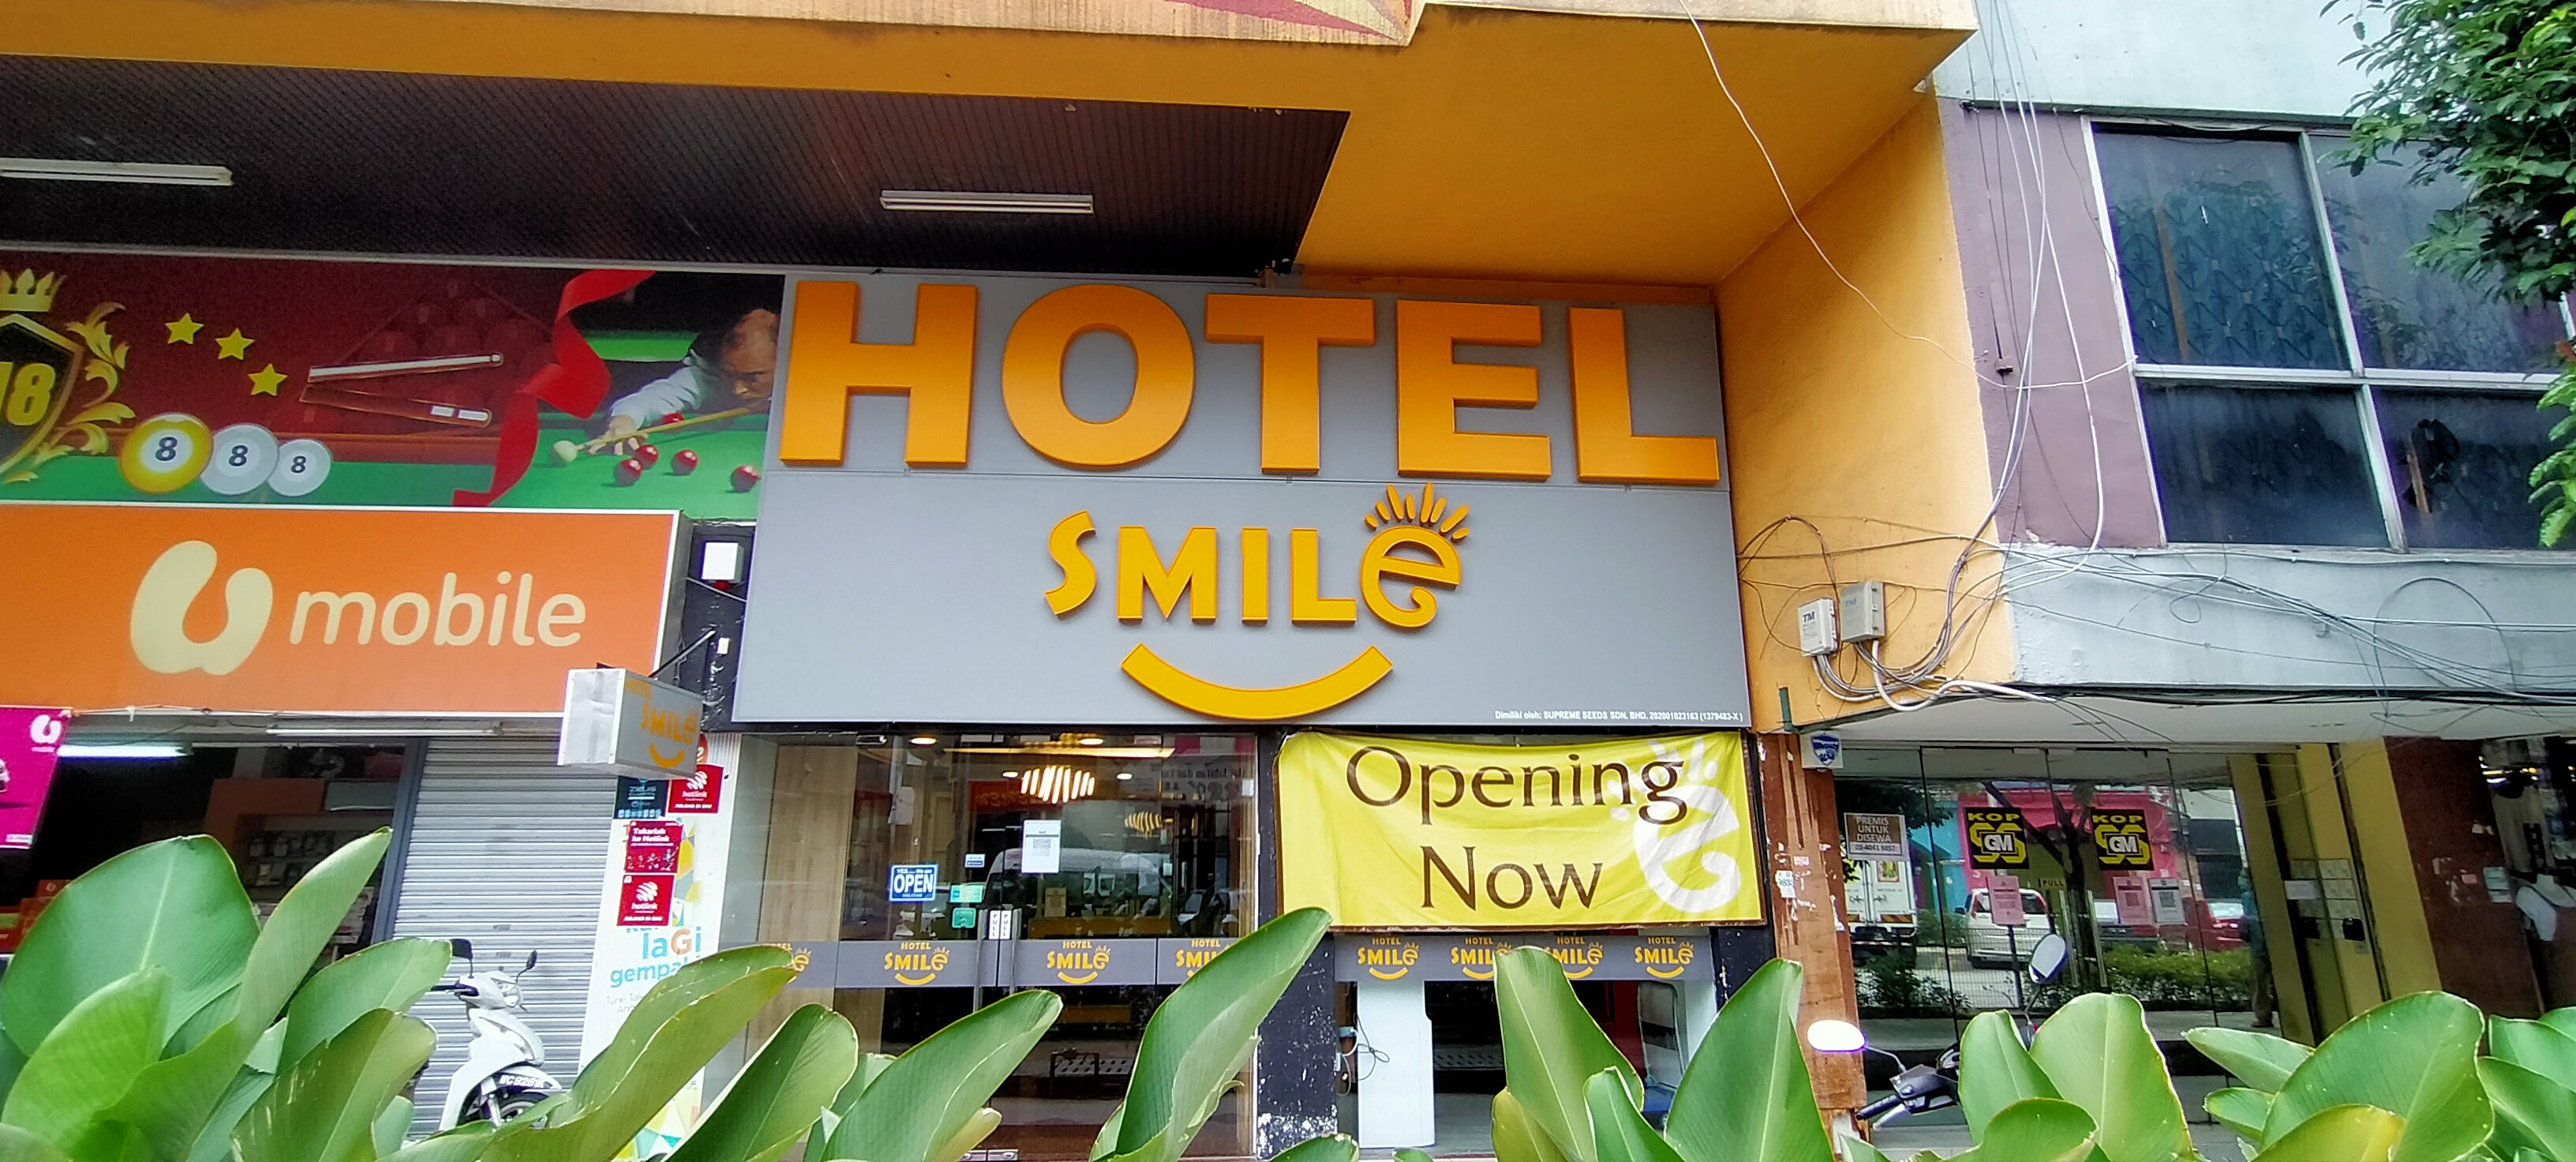 front-hotel-5